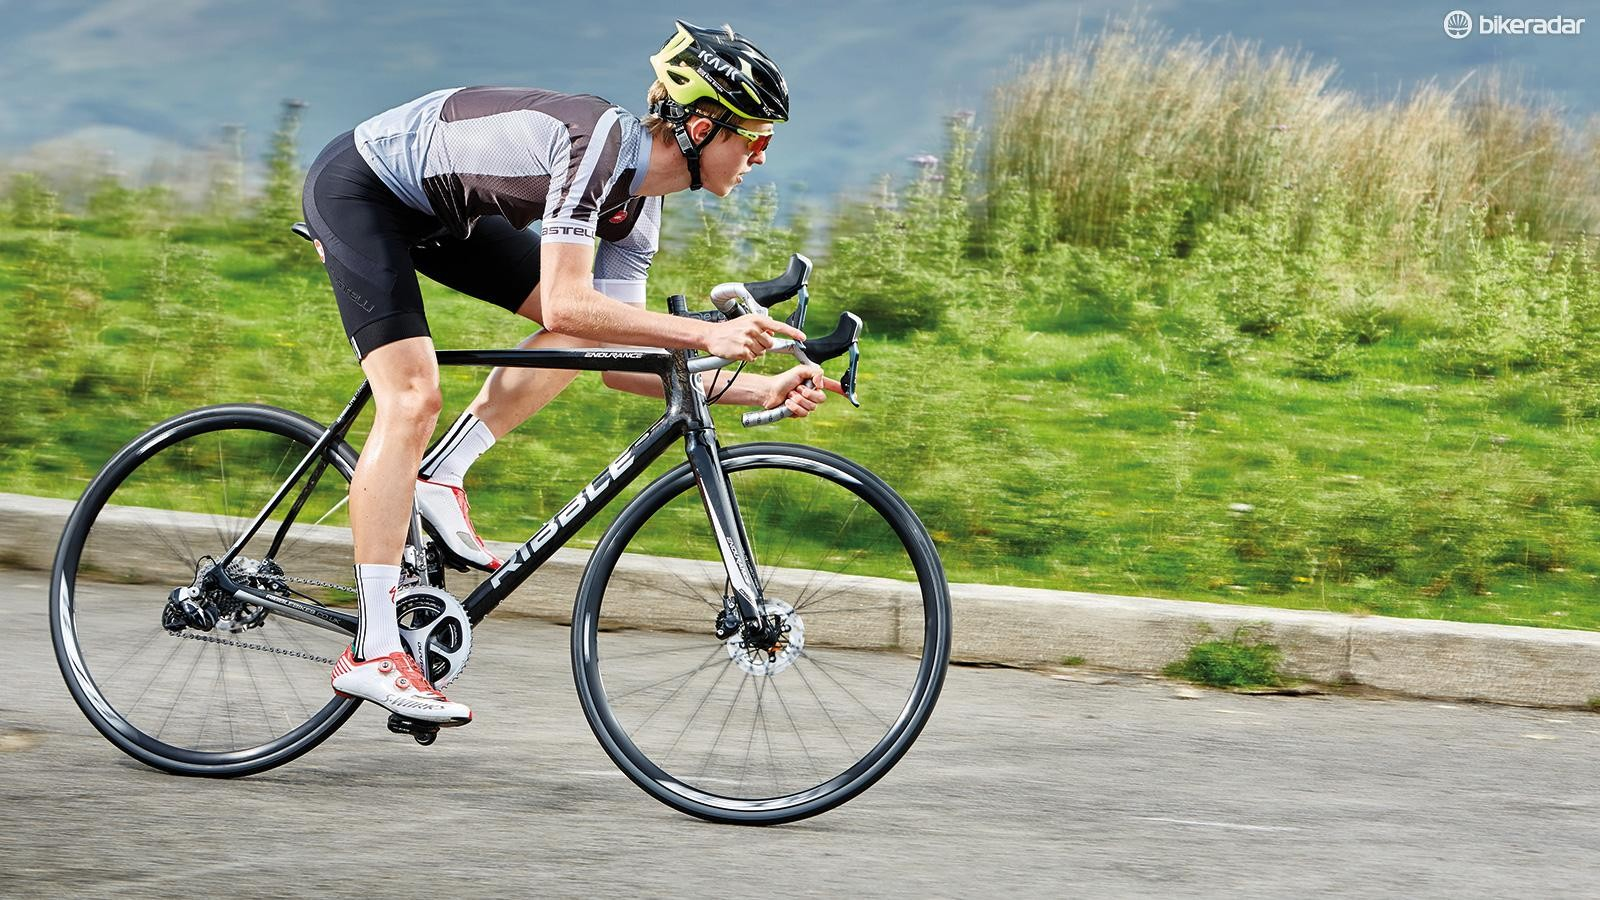 Ribble's Endurance Dura-Ace Disc Di2